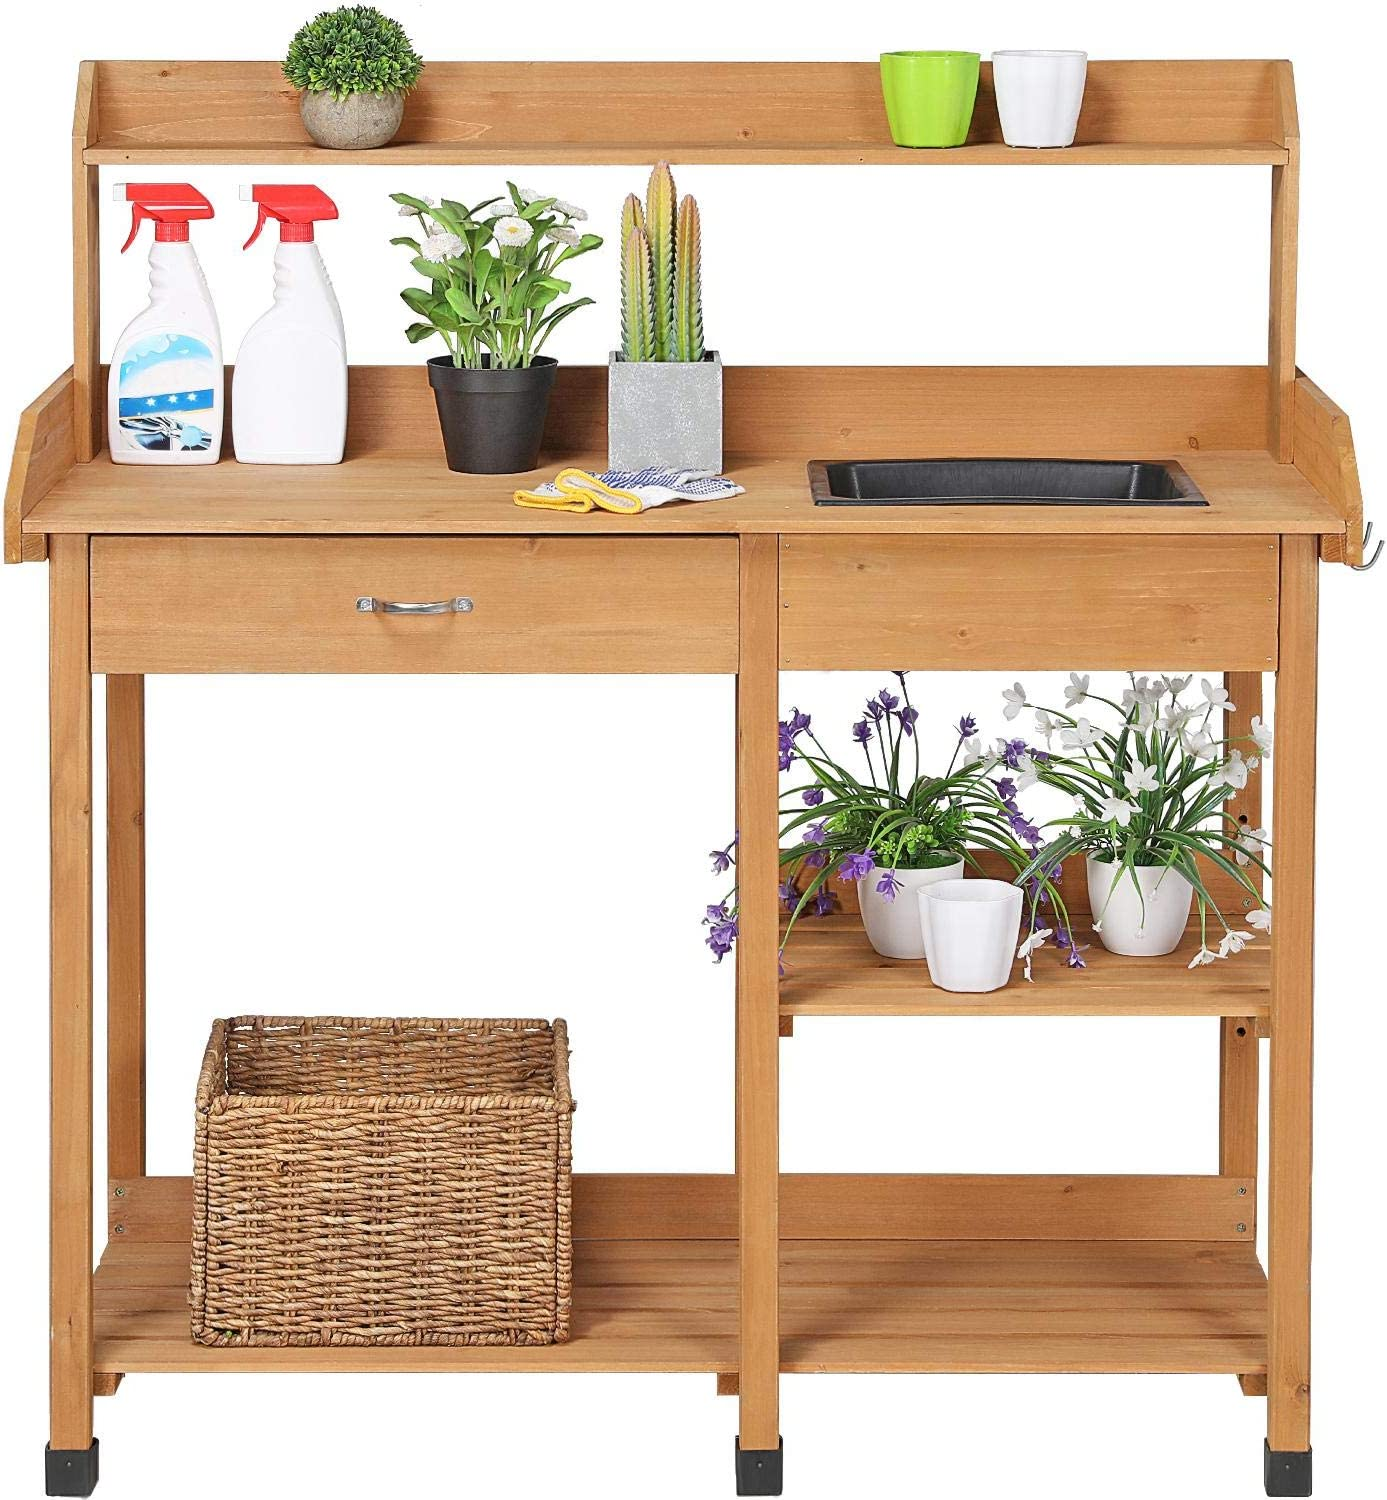 Lakewood 3 Person Swing, Amazon Com Yaheetech Potting Bench Outdoor Garden Work Bench Station Planting Solid Wood Construction W Sink Drawer Rack Shelves Natural Garden Outdoor